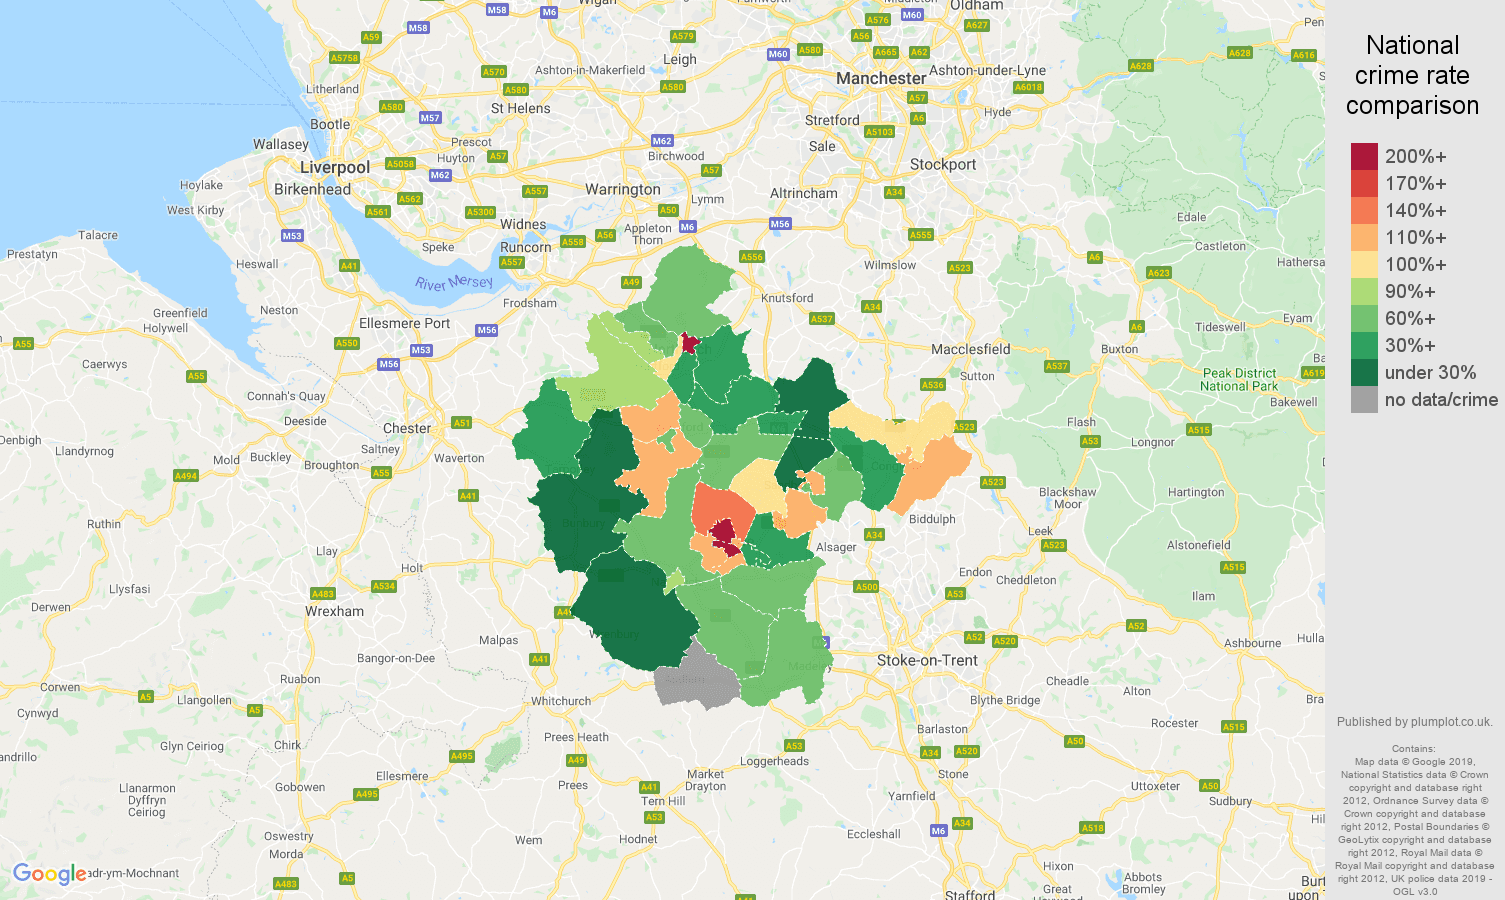 Crewe other crime rate comparison map